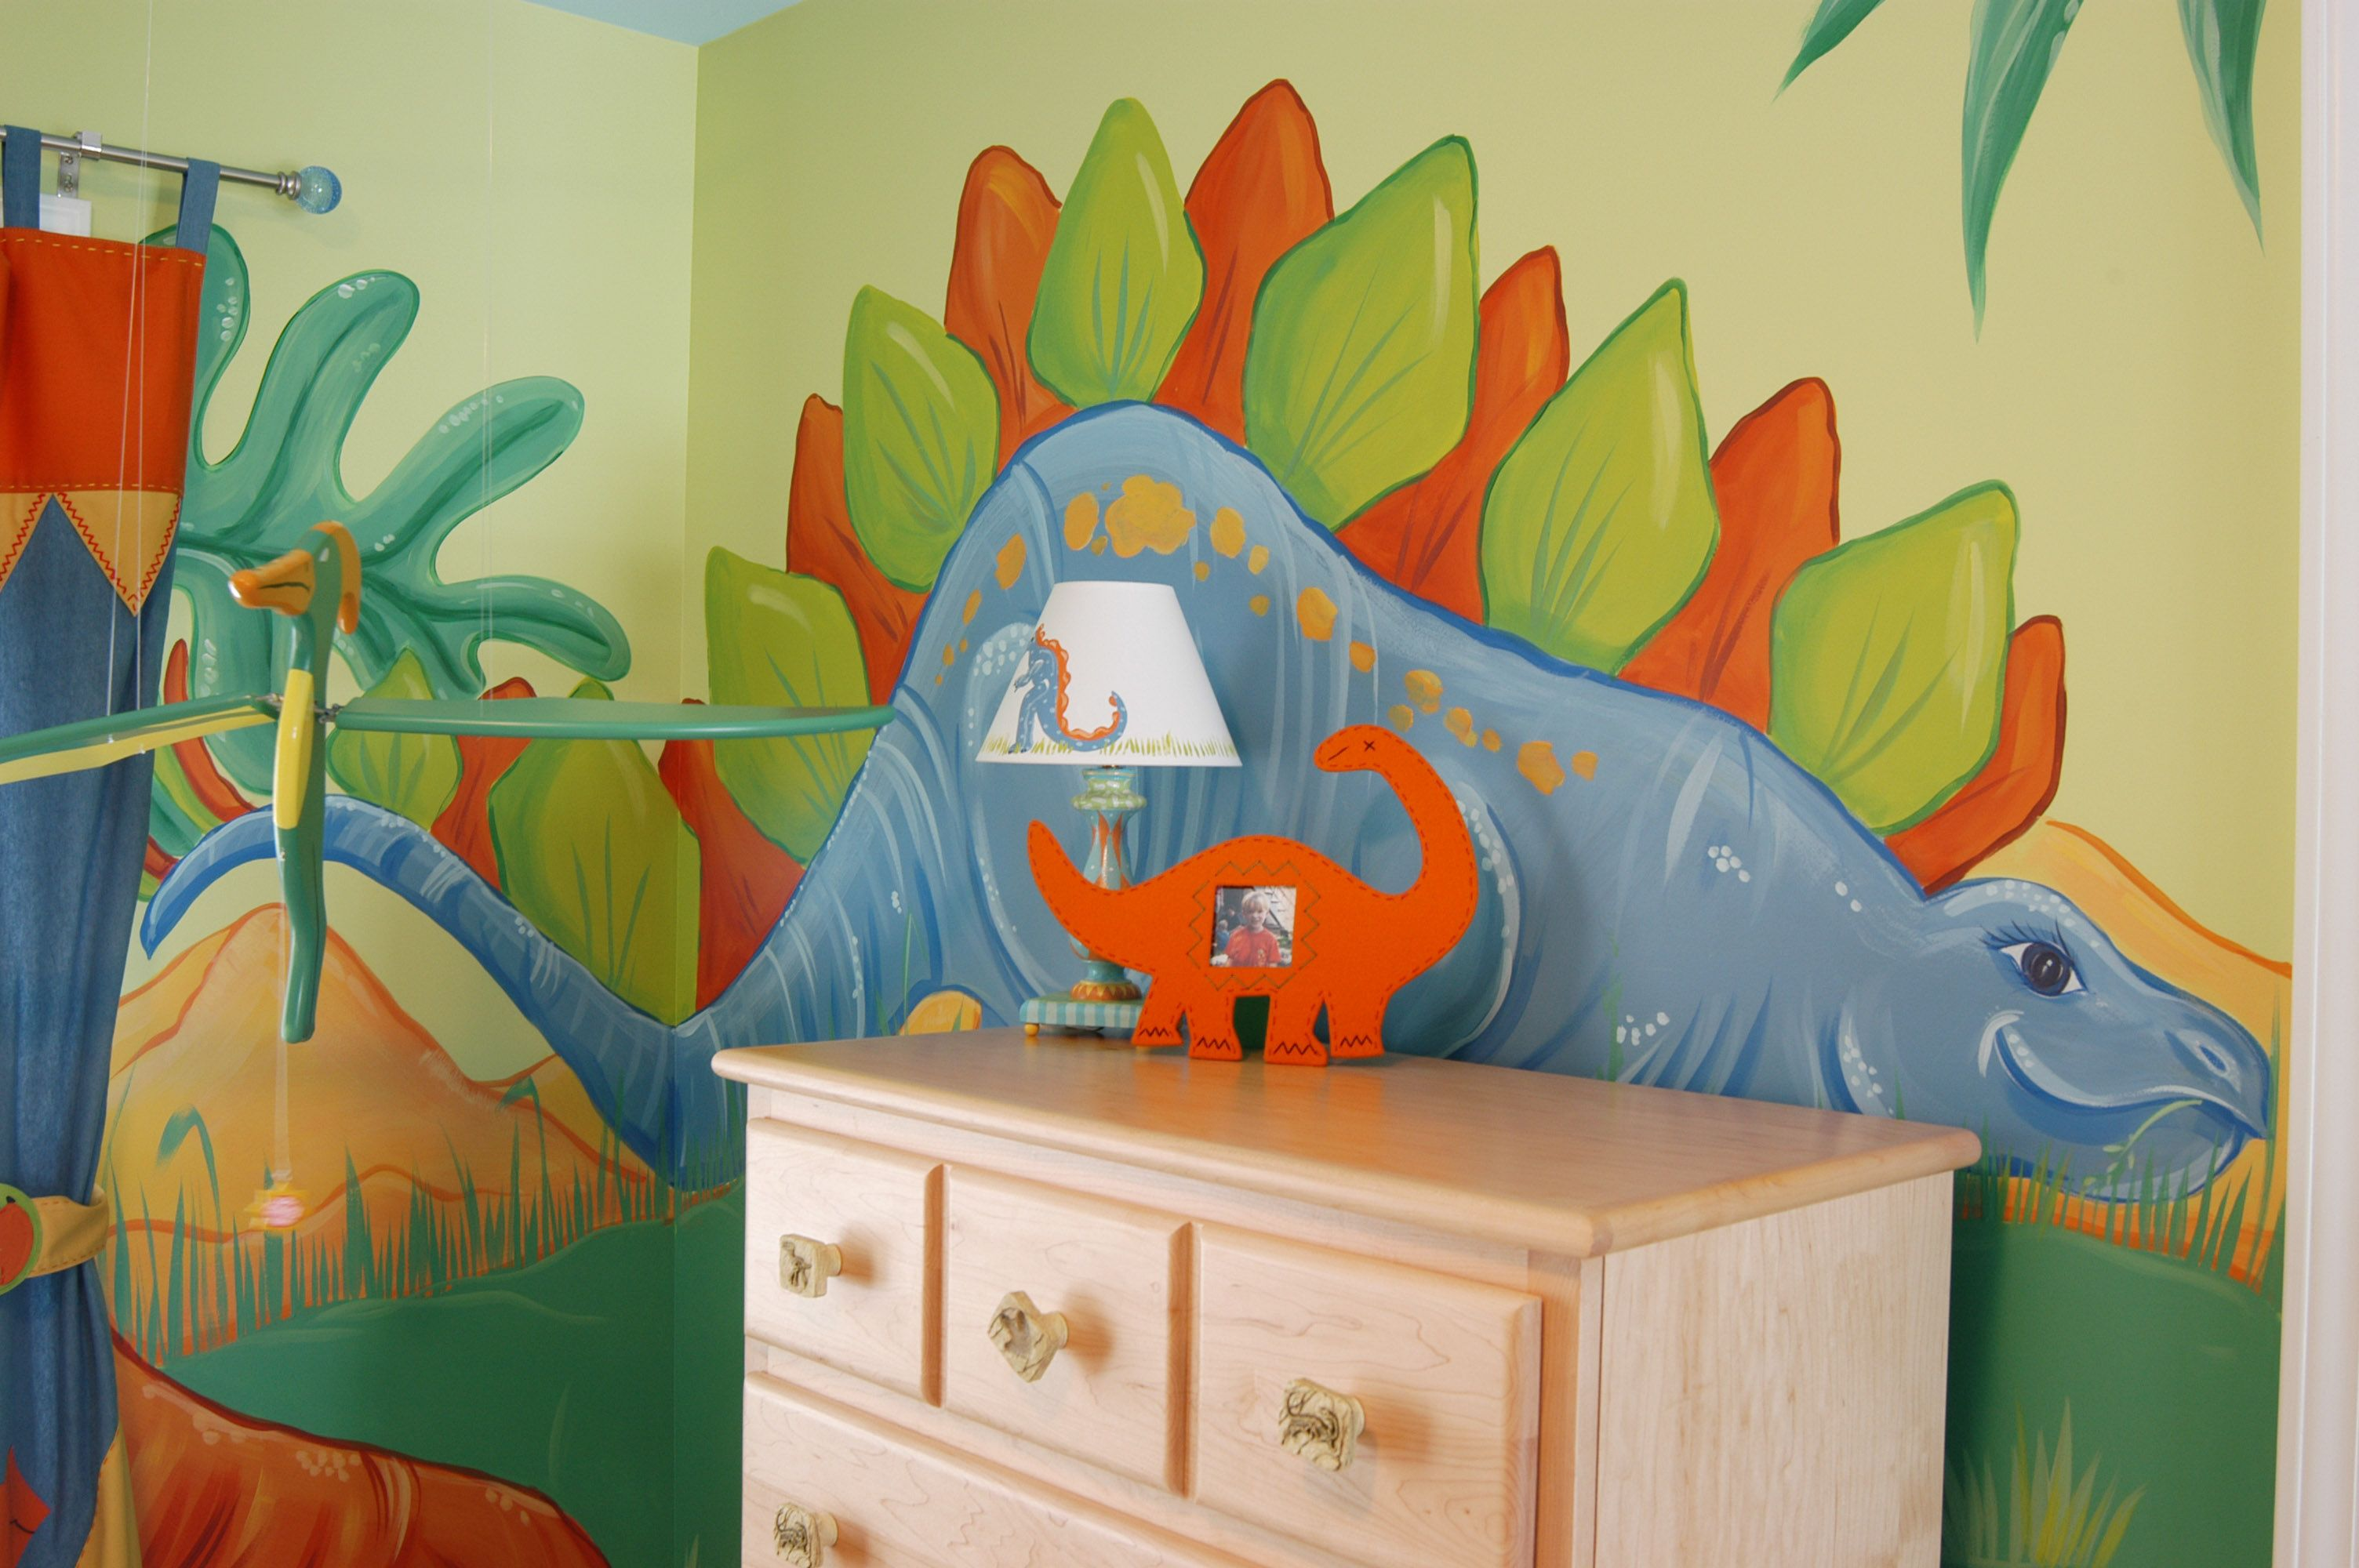 A Friendly Dinosaur Mural And Cloud Ceiling To Compliment The